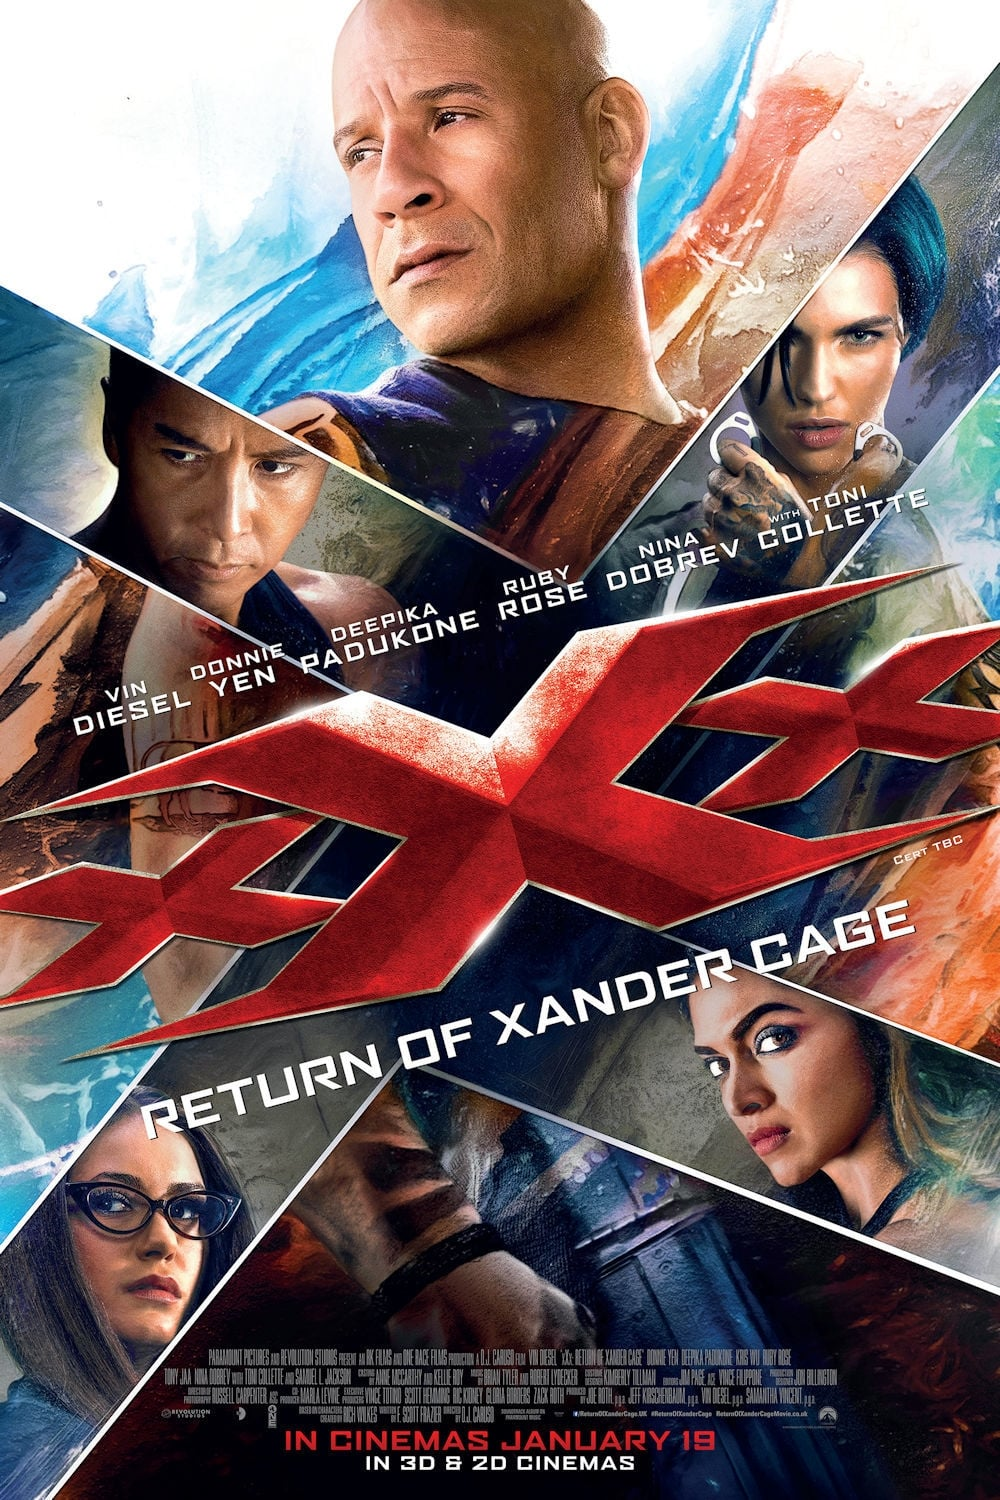 Xxx Return Of Xander Cage 2017 - Posters  The Movie -1091